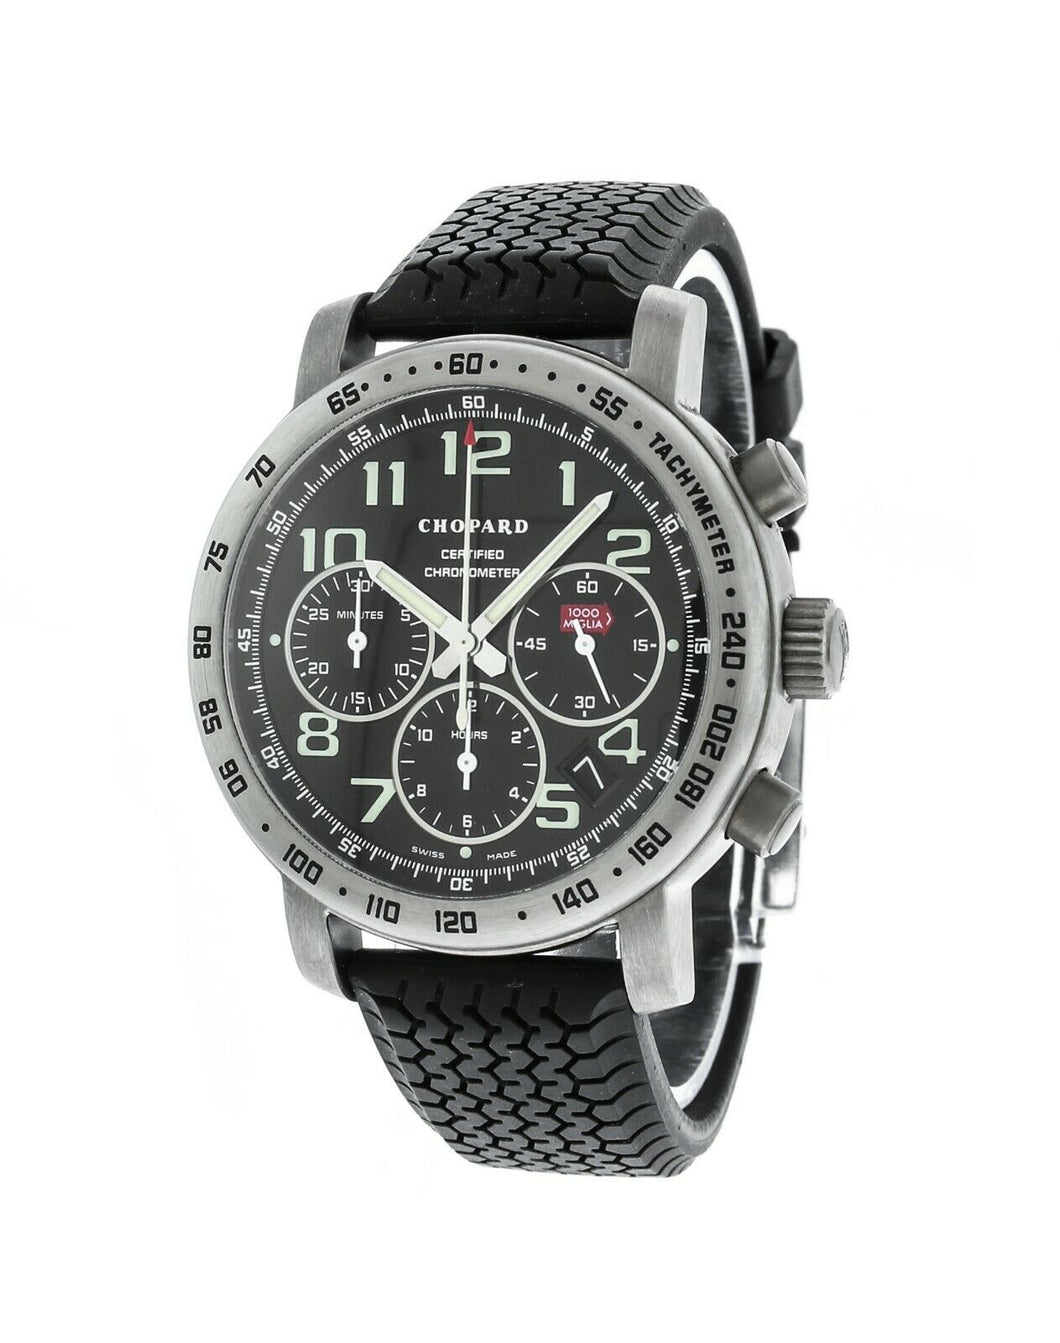 Chopard Mille Miglia Titanium Black Rubber Chronograph Men's Watch 16/8915